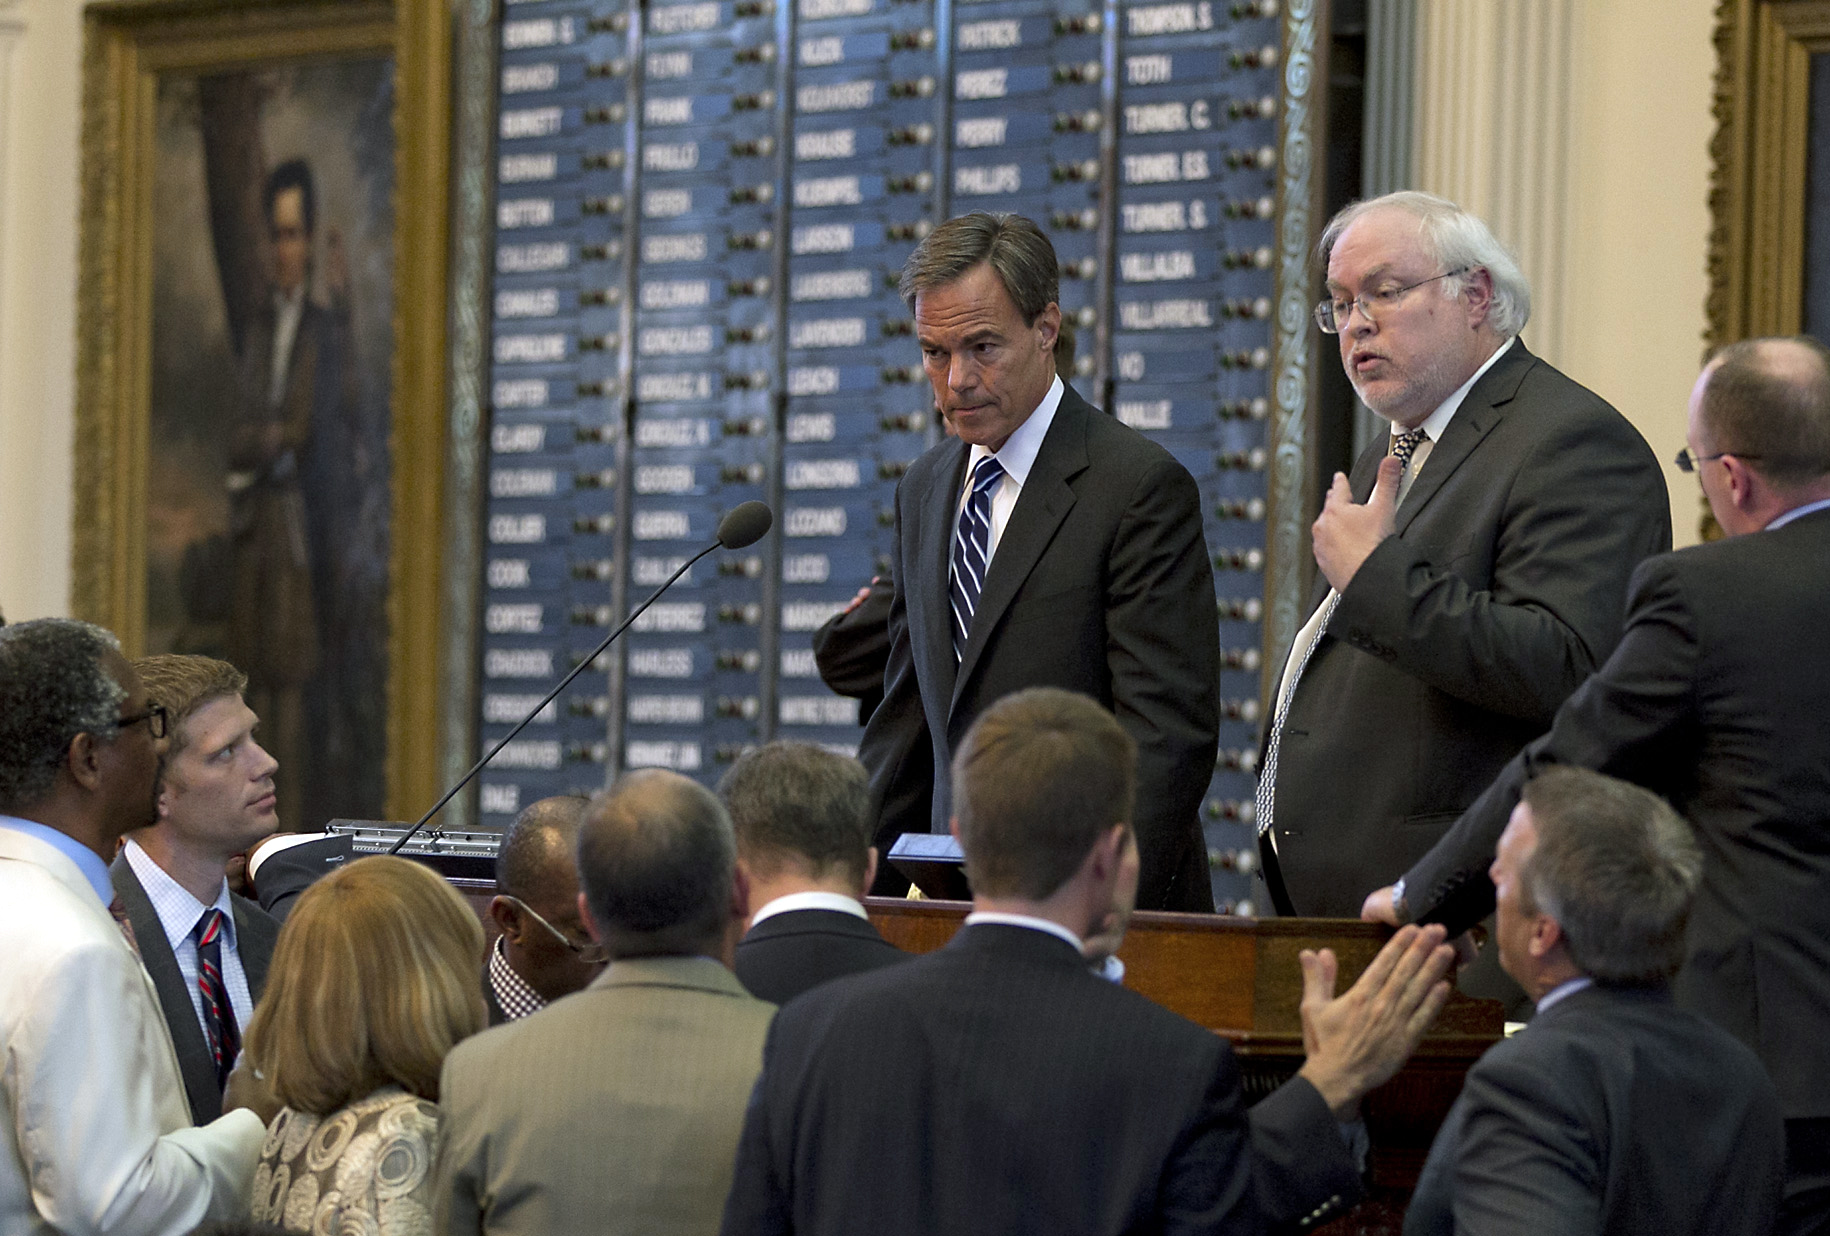 Texas House Passes Abortion Law Dems Seek Delay The Blade